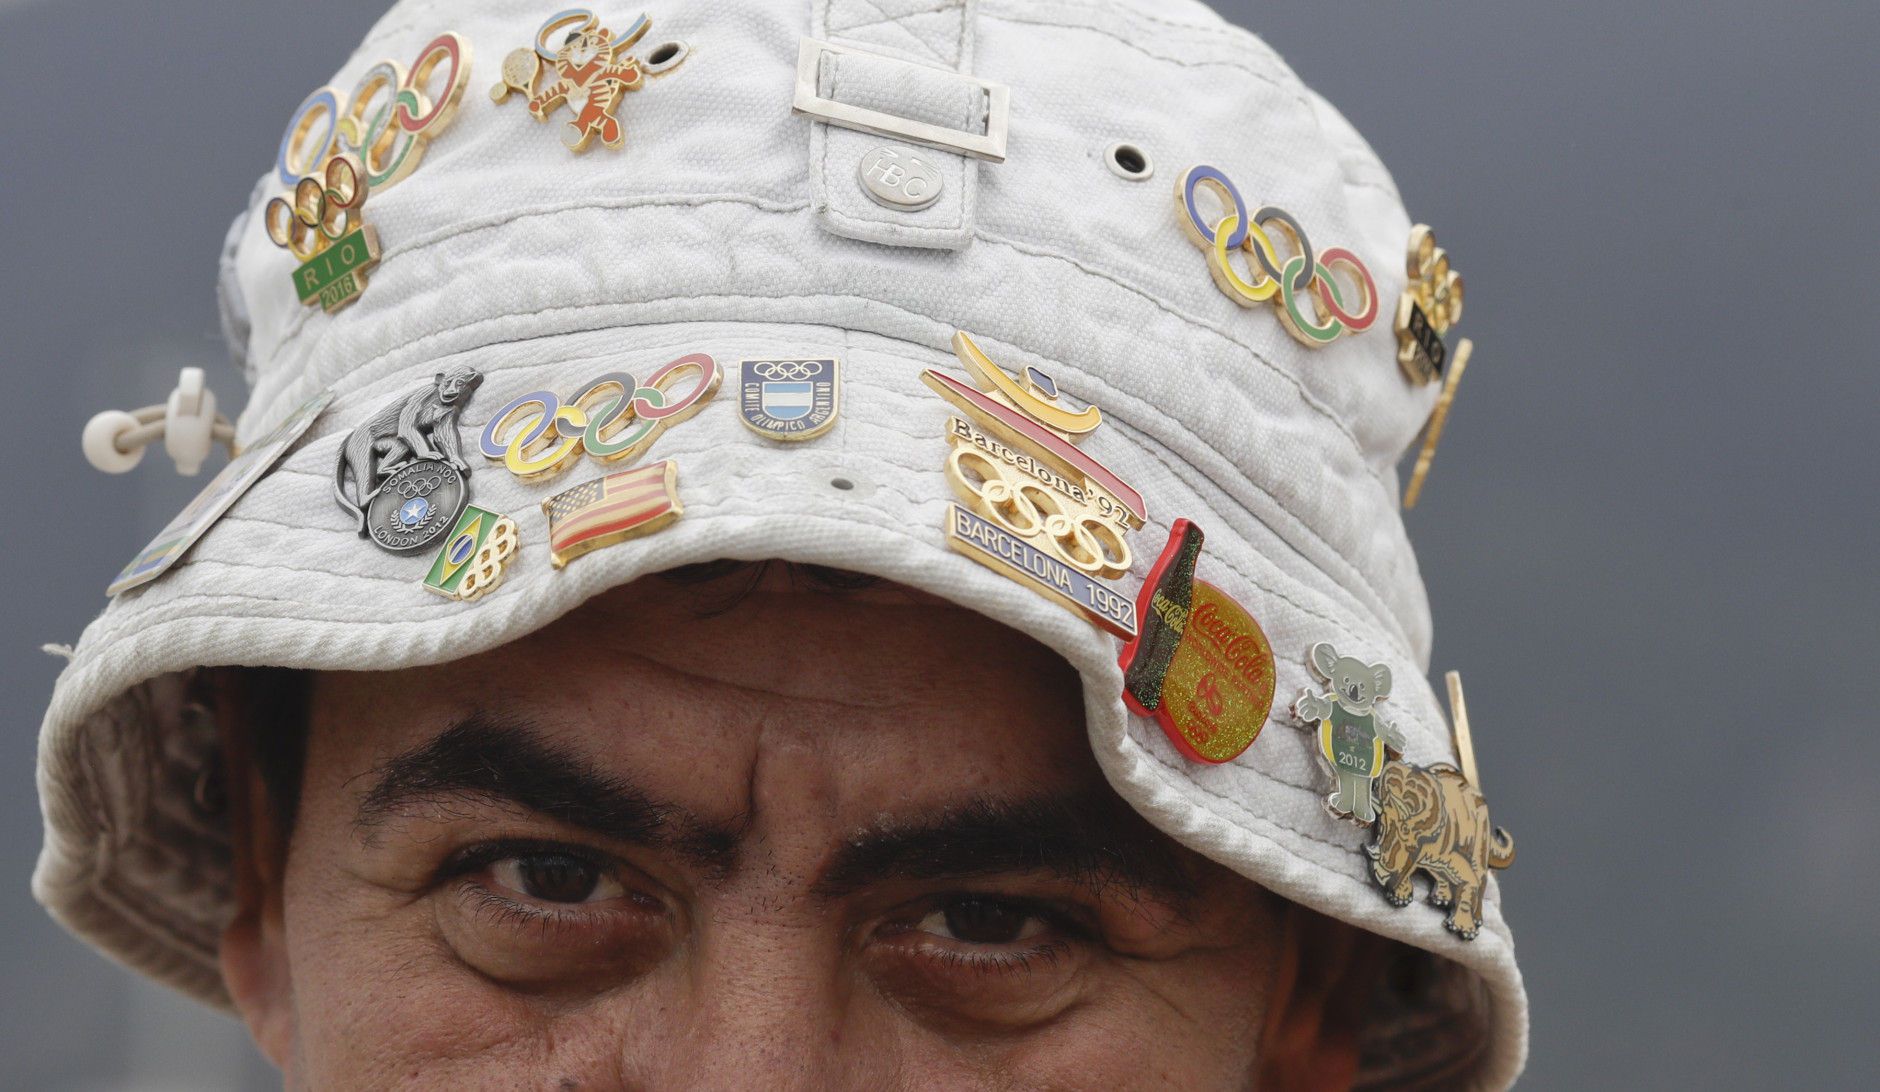 A man wearing a hat with pins poses for a picture outside the Olympic village ahead of the 2016 Summer Olympics in Rio de Janeiro, Brazil, Wednesday, Aug. 3, 2016. The Games opening ceremony is on Friday.(AP Photo/Natacha Pisarenko)